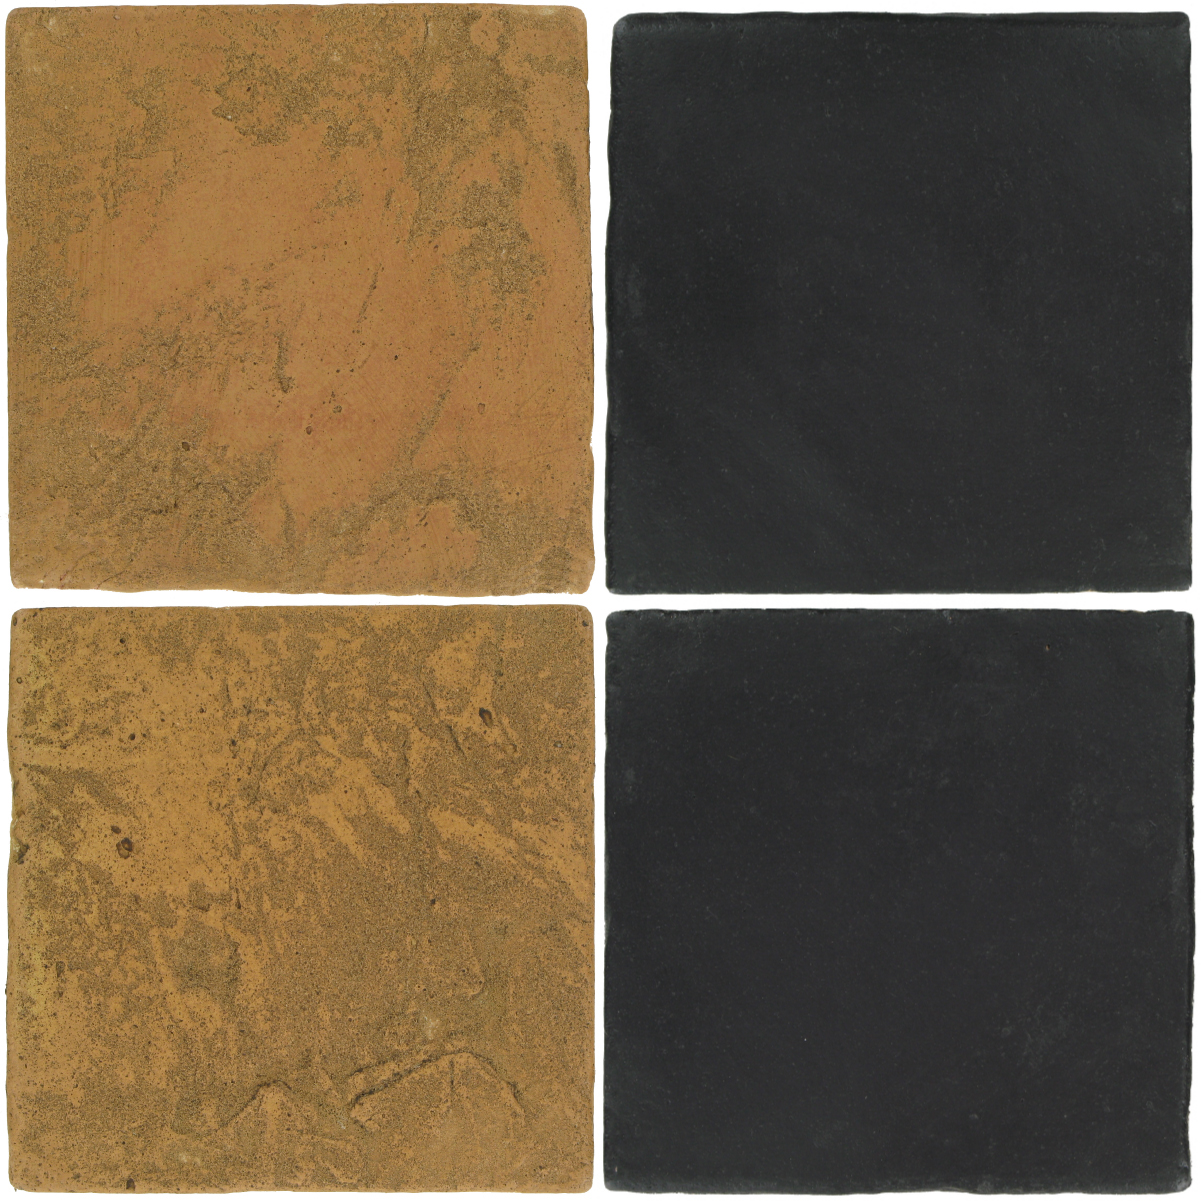 Pedralbes Antique Terracotta  2 Color Combinations  VTG-PSSW Siena Wheat + OHS-PGCB Carbon Black